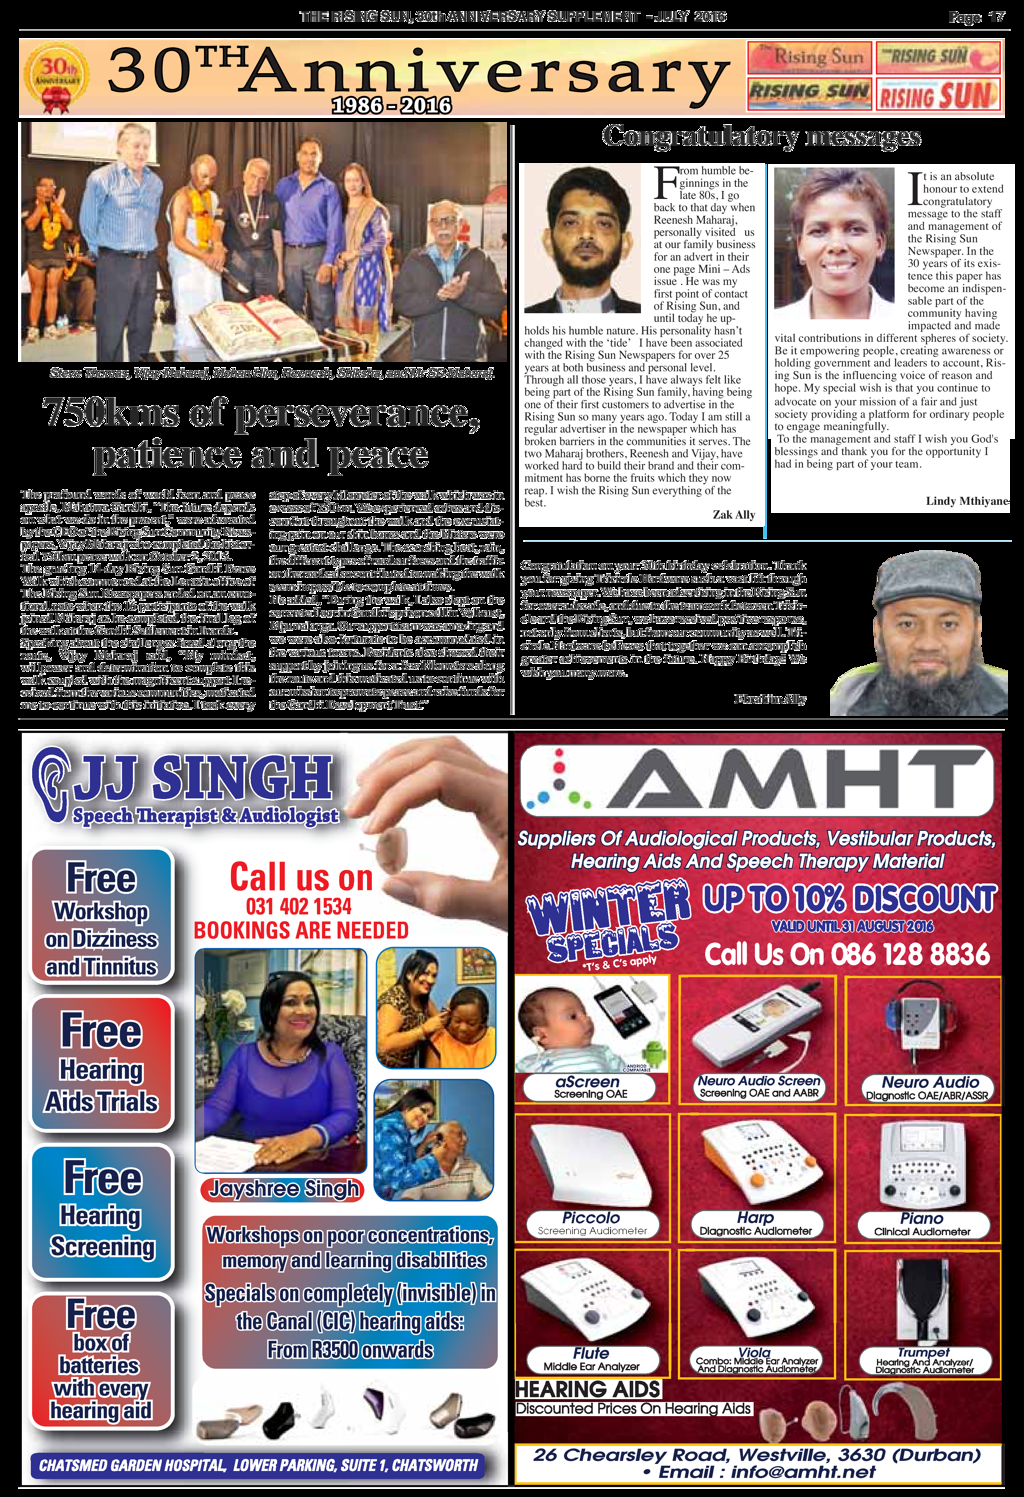 celebrating-our-30th-anniversary-epapers-page-17